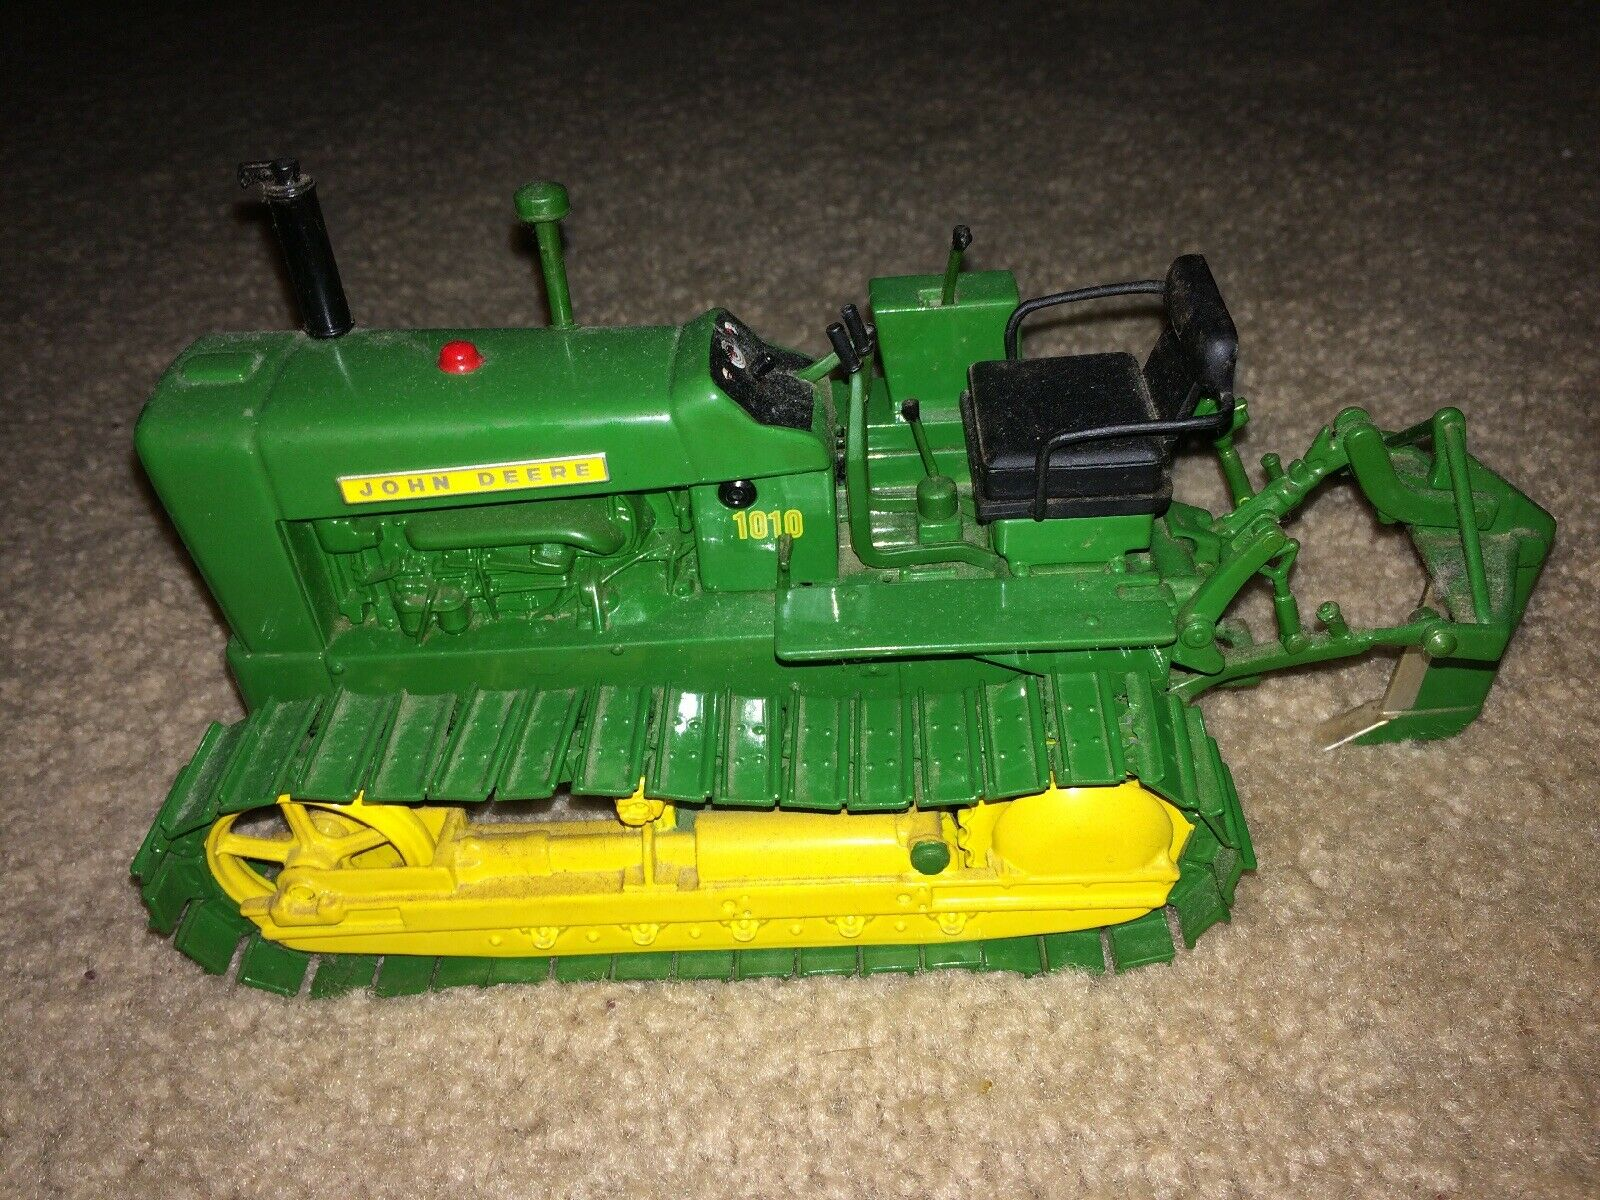 1 16 ERTL JOHN DEERE 1010 CRAWLER WITH RIPPER  2002 PLOW CITY FARM TOY SHOW